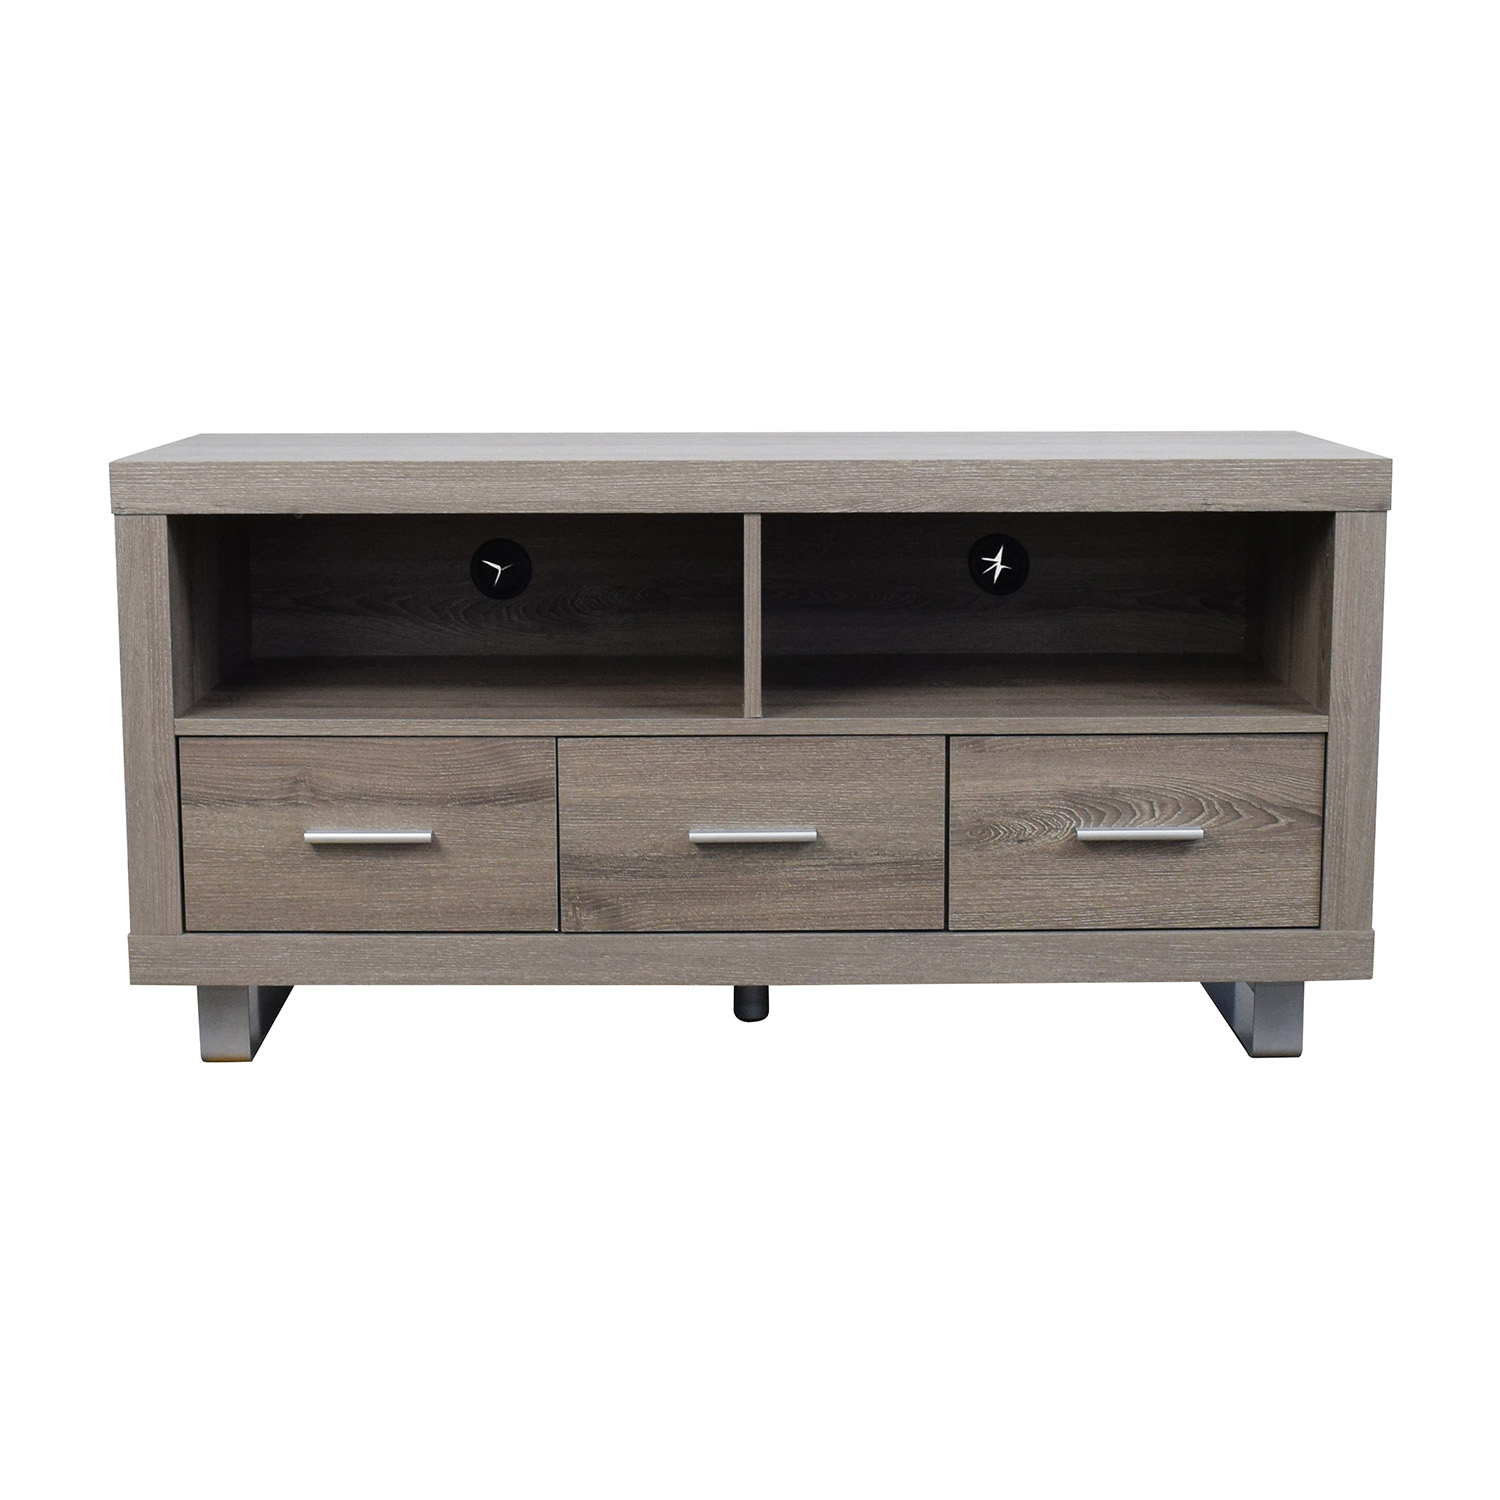 shop Monarch Specialties Light Brown TV Stand Monarch Specialties Inc. Storage